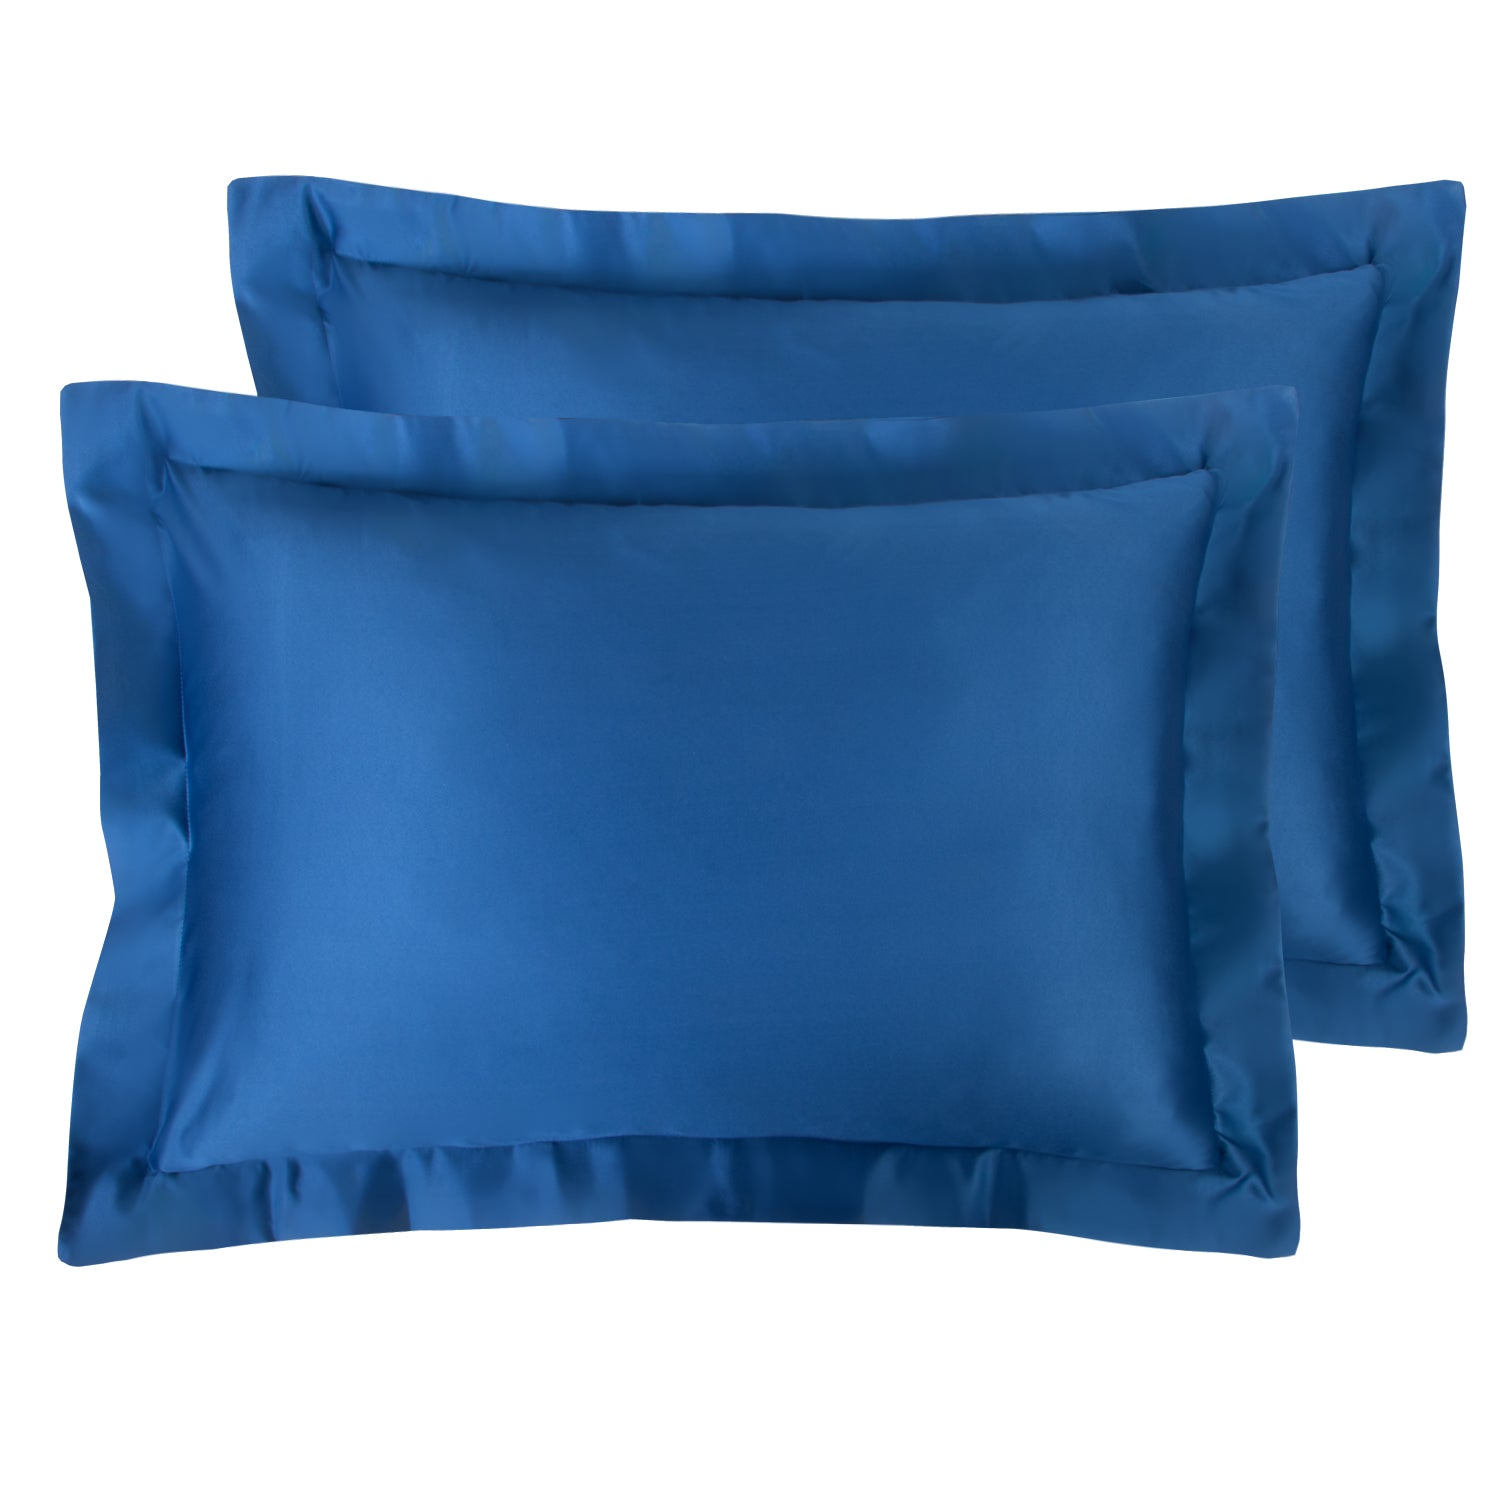 NTBAY Silky Satin Pillow Shams Set of 2